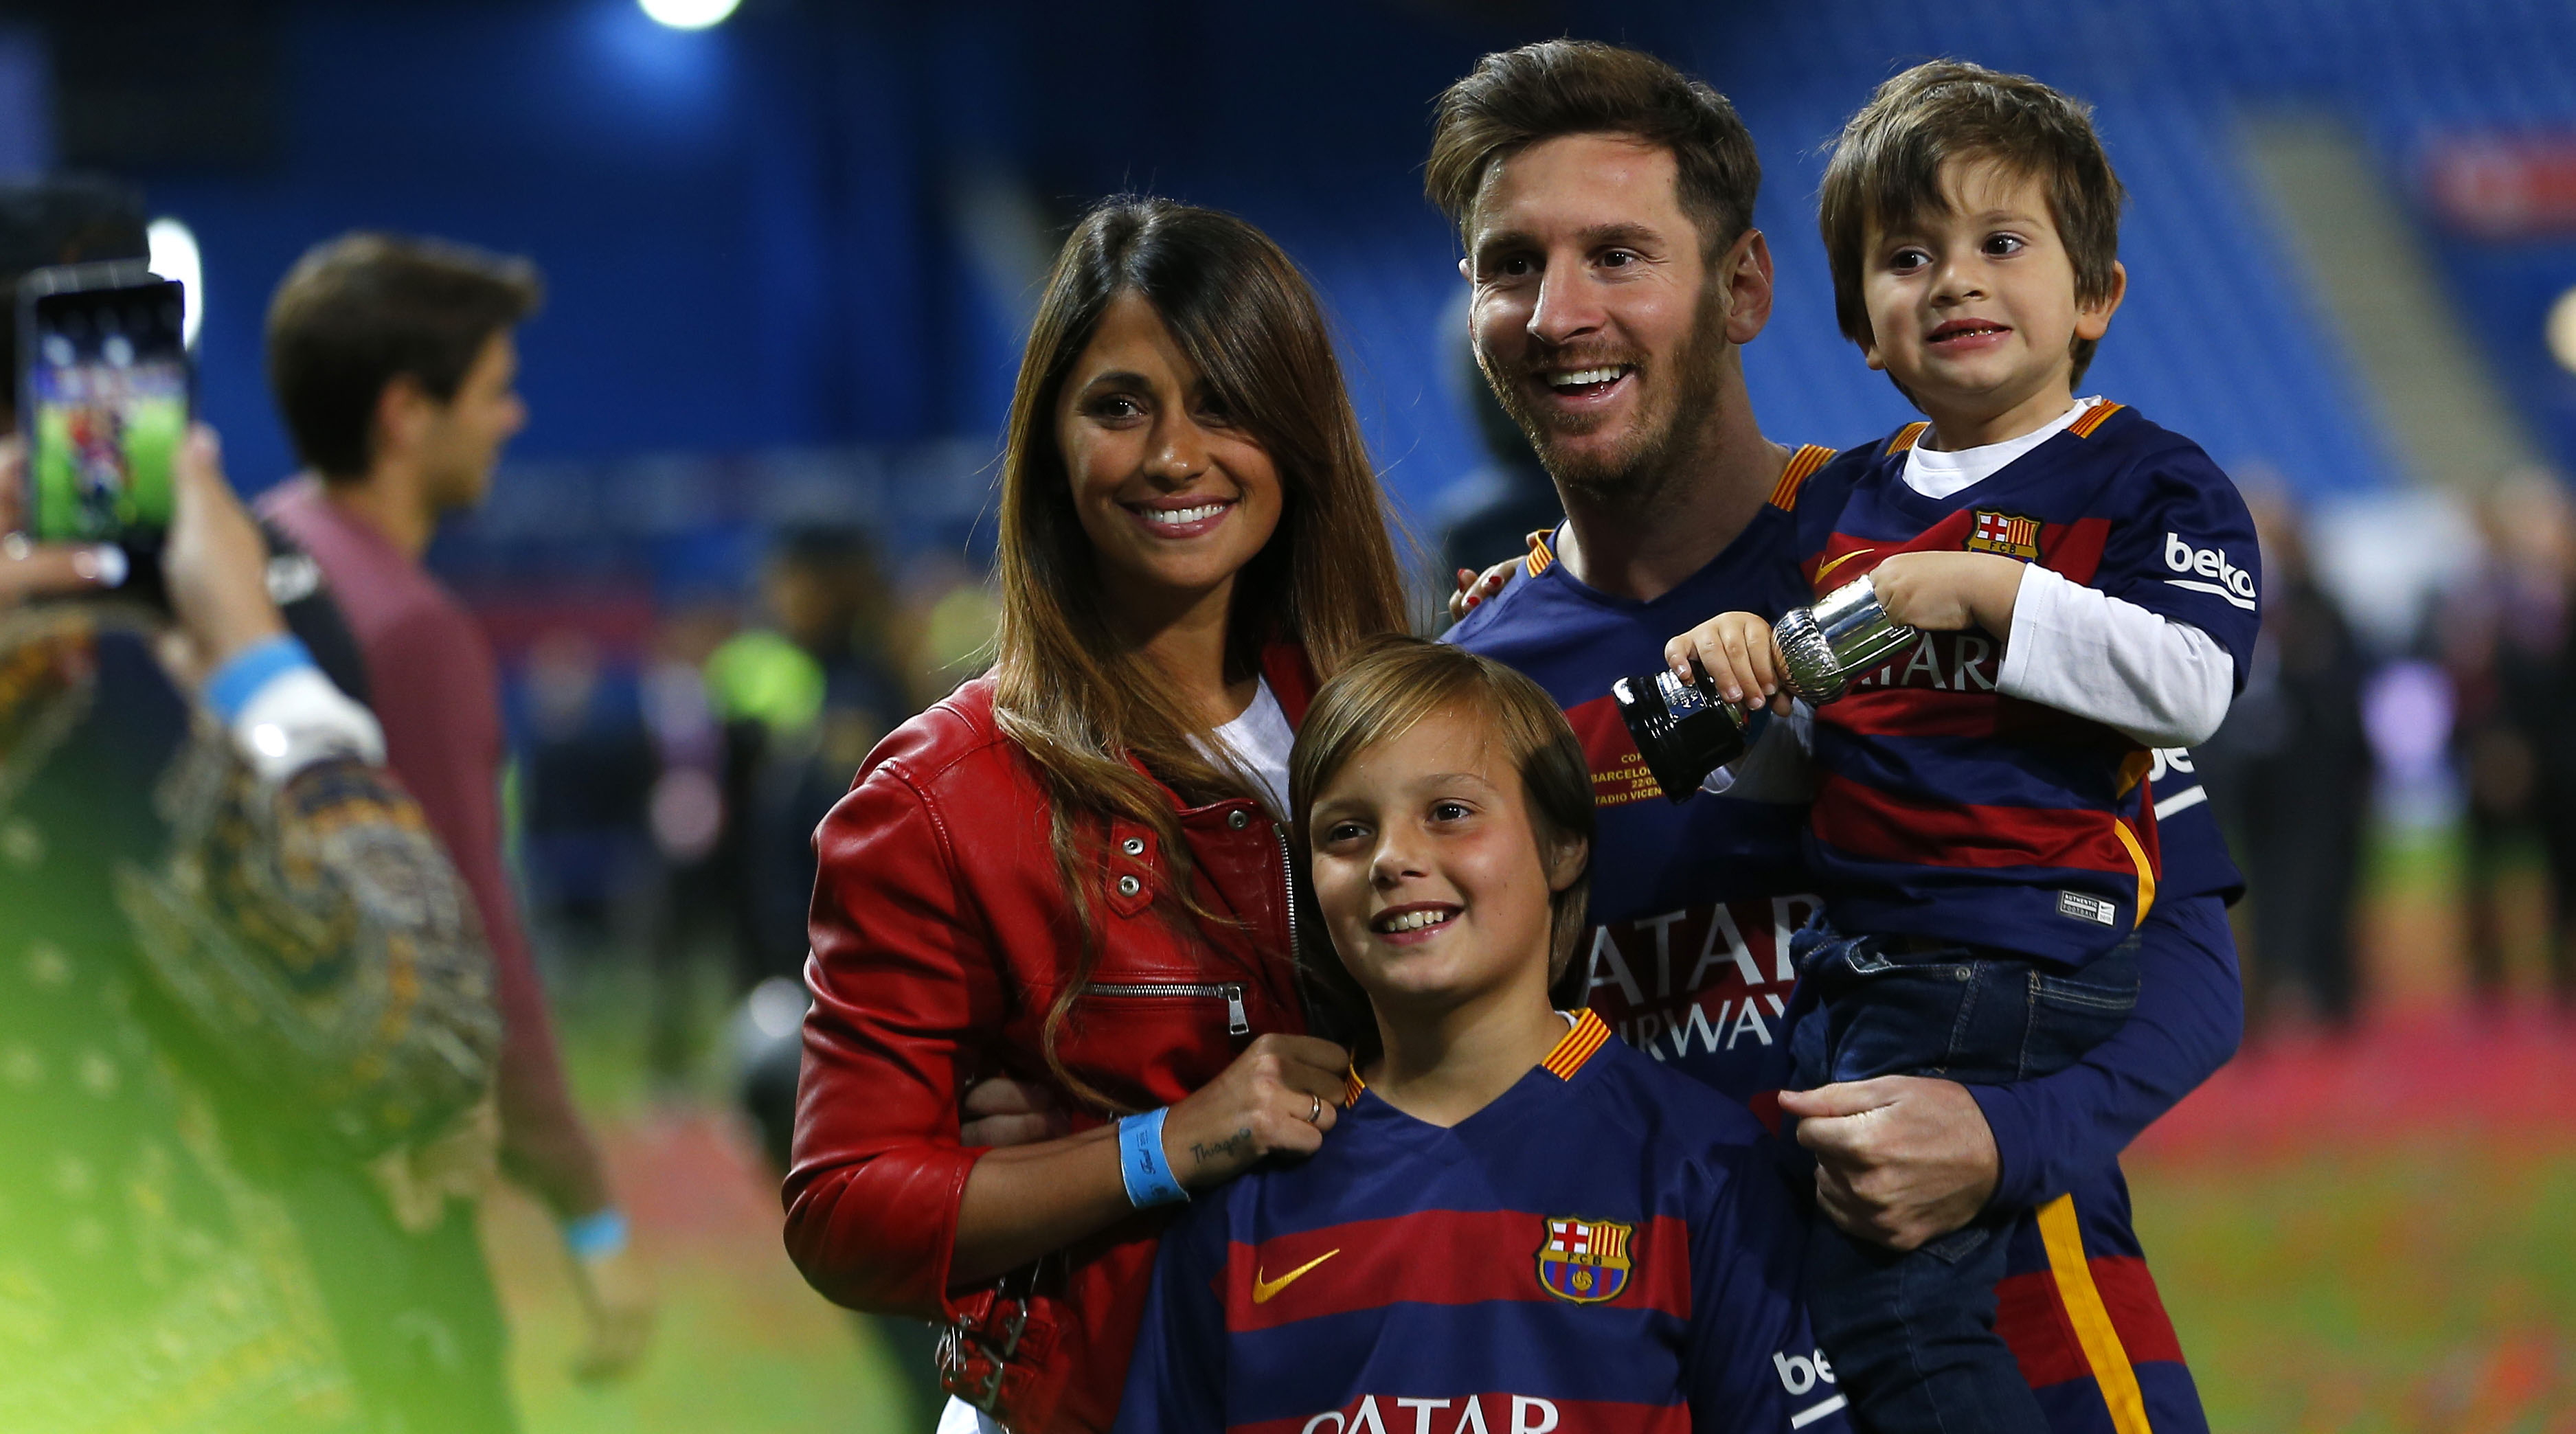 Ivan Rakitic claims Lionel Messi bought his neighbors' home because they were too noisy